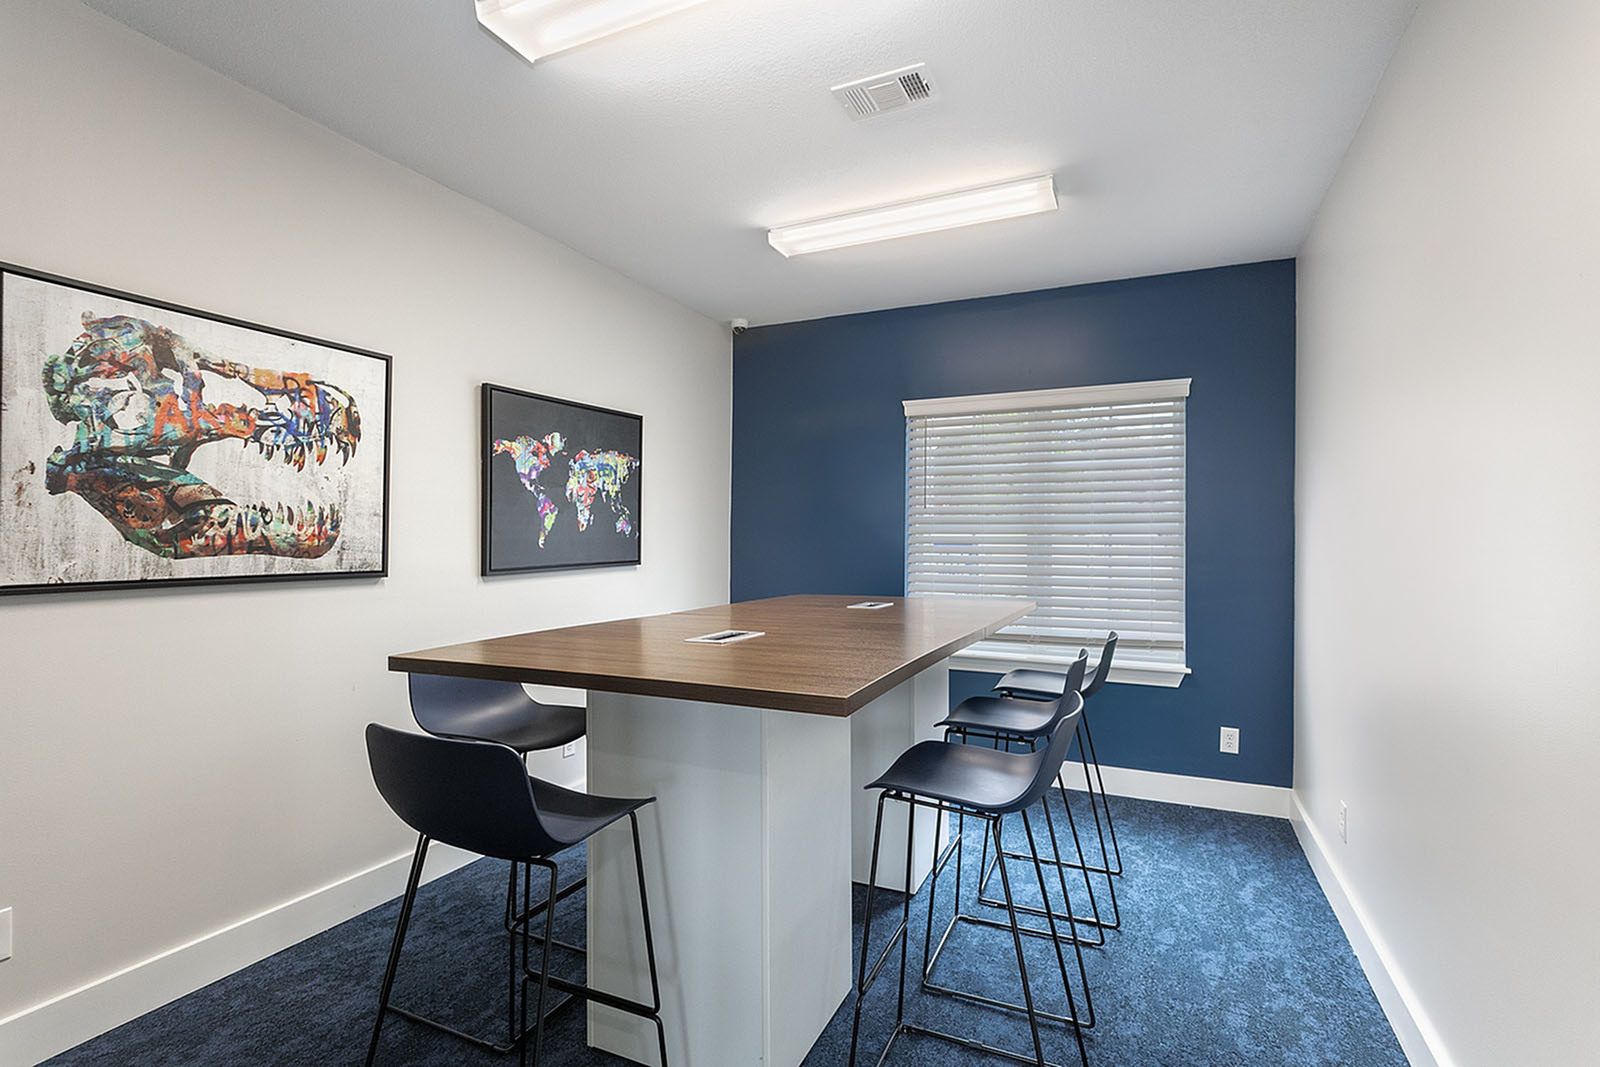 Image of Study Rooms w/ Business Center for The Social Campus